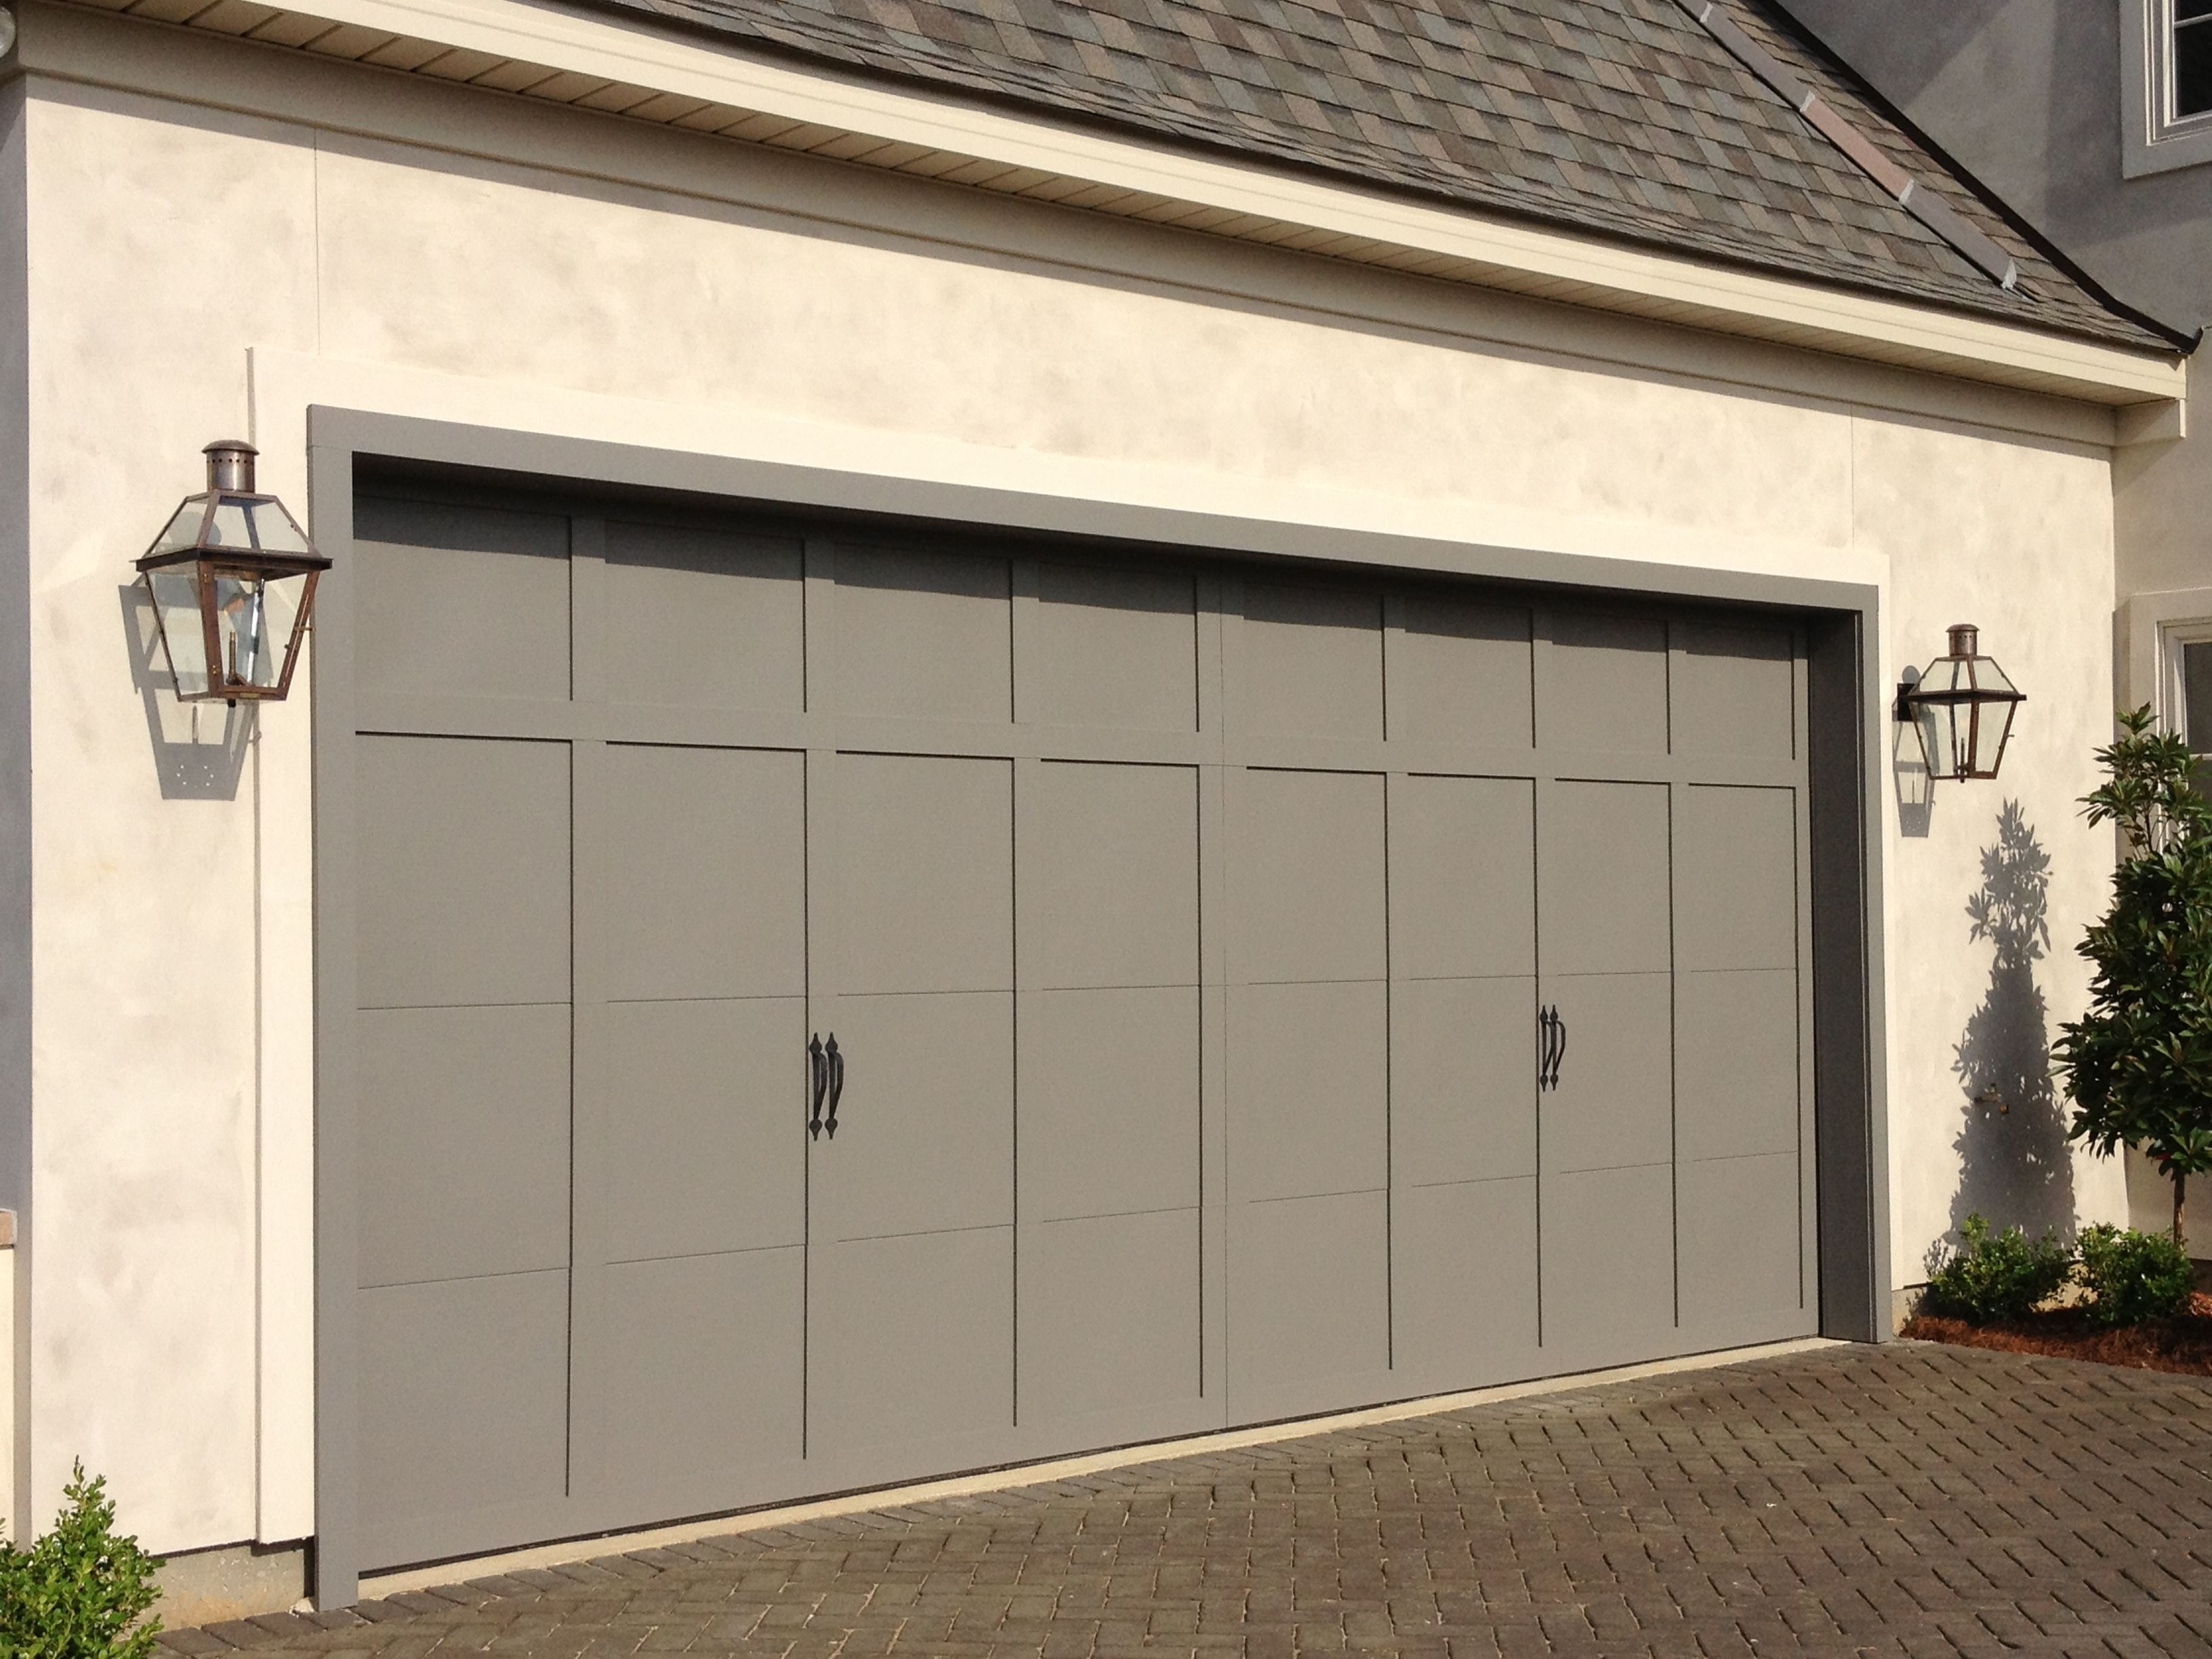 Preferred Outdoor Garage Lanterns Pertaining To Bevolo French Quarter Lanterns Perfect Flanking Garage Doors (View 19 of 20)